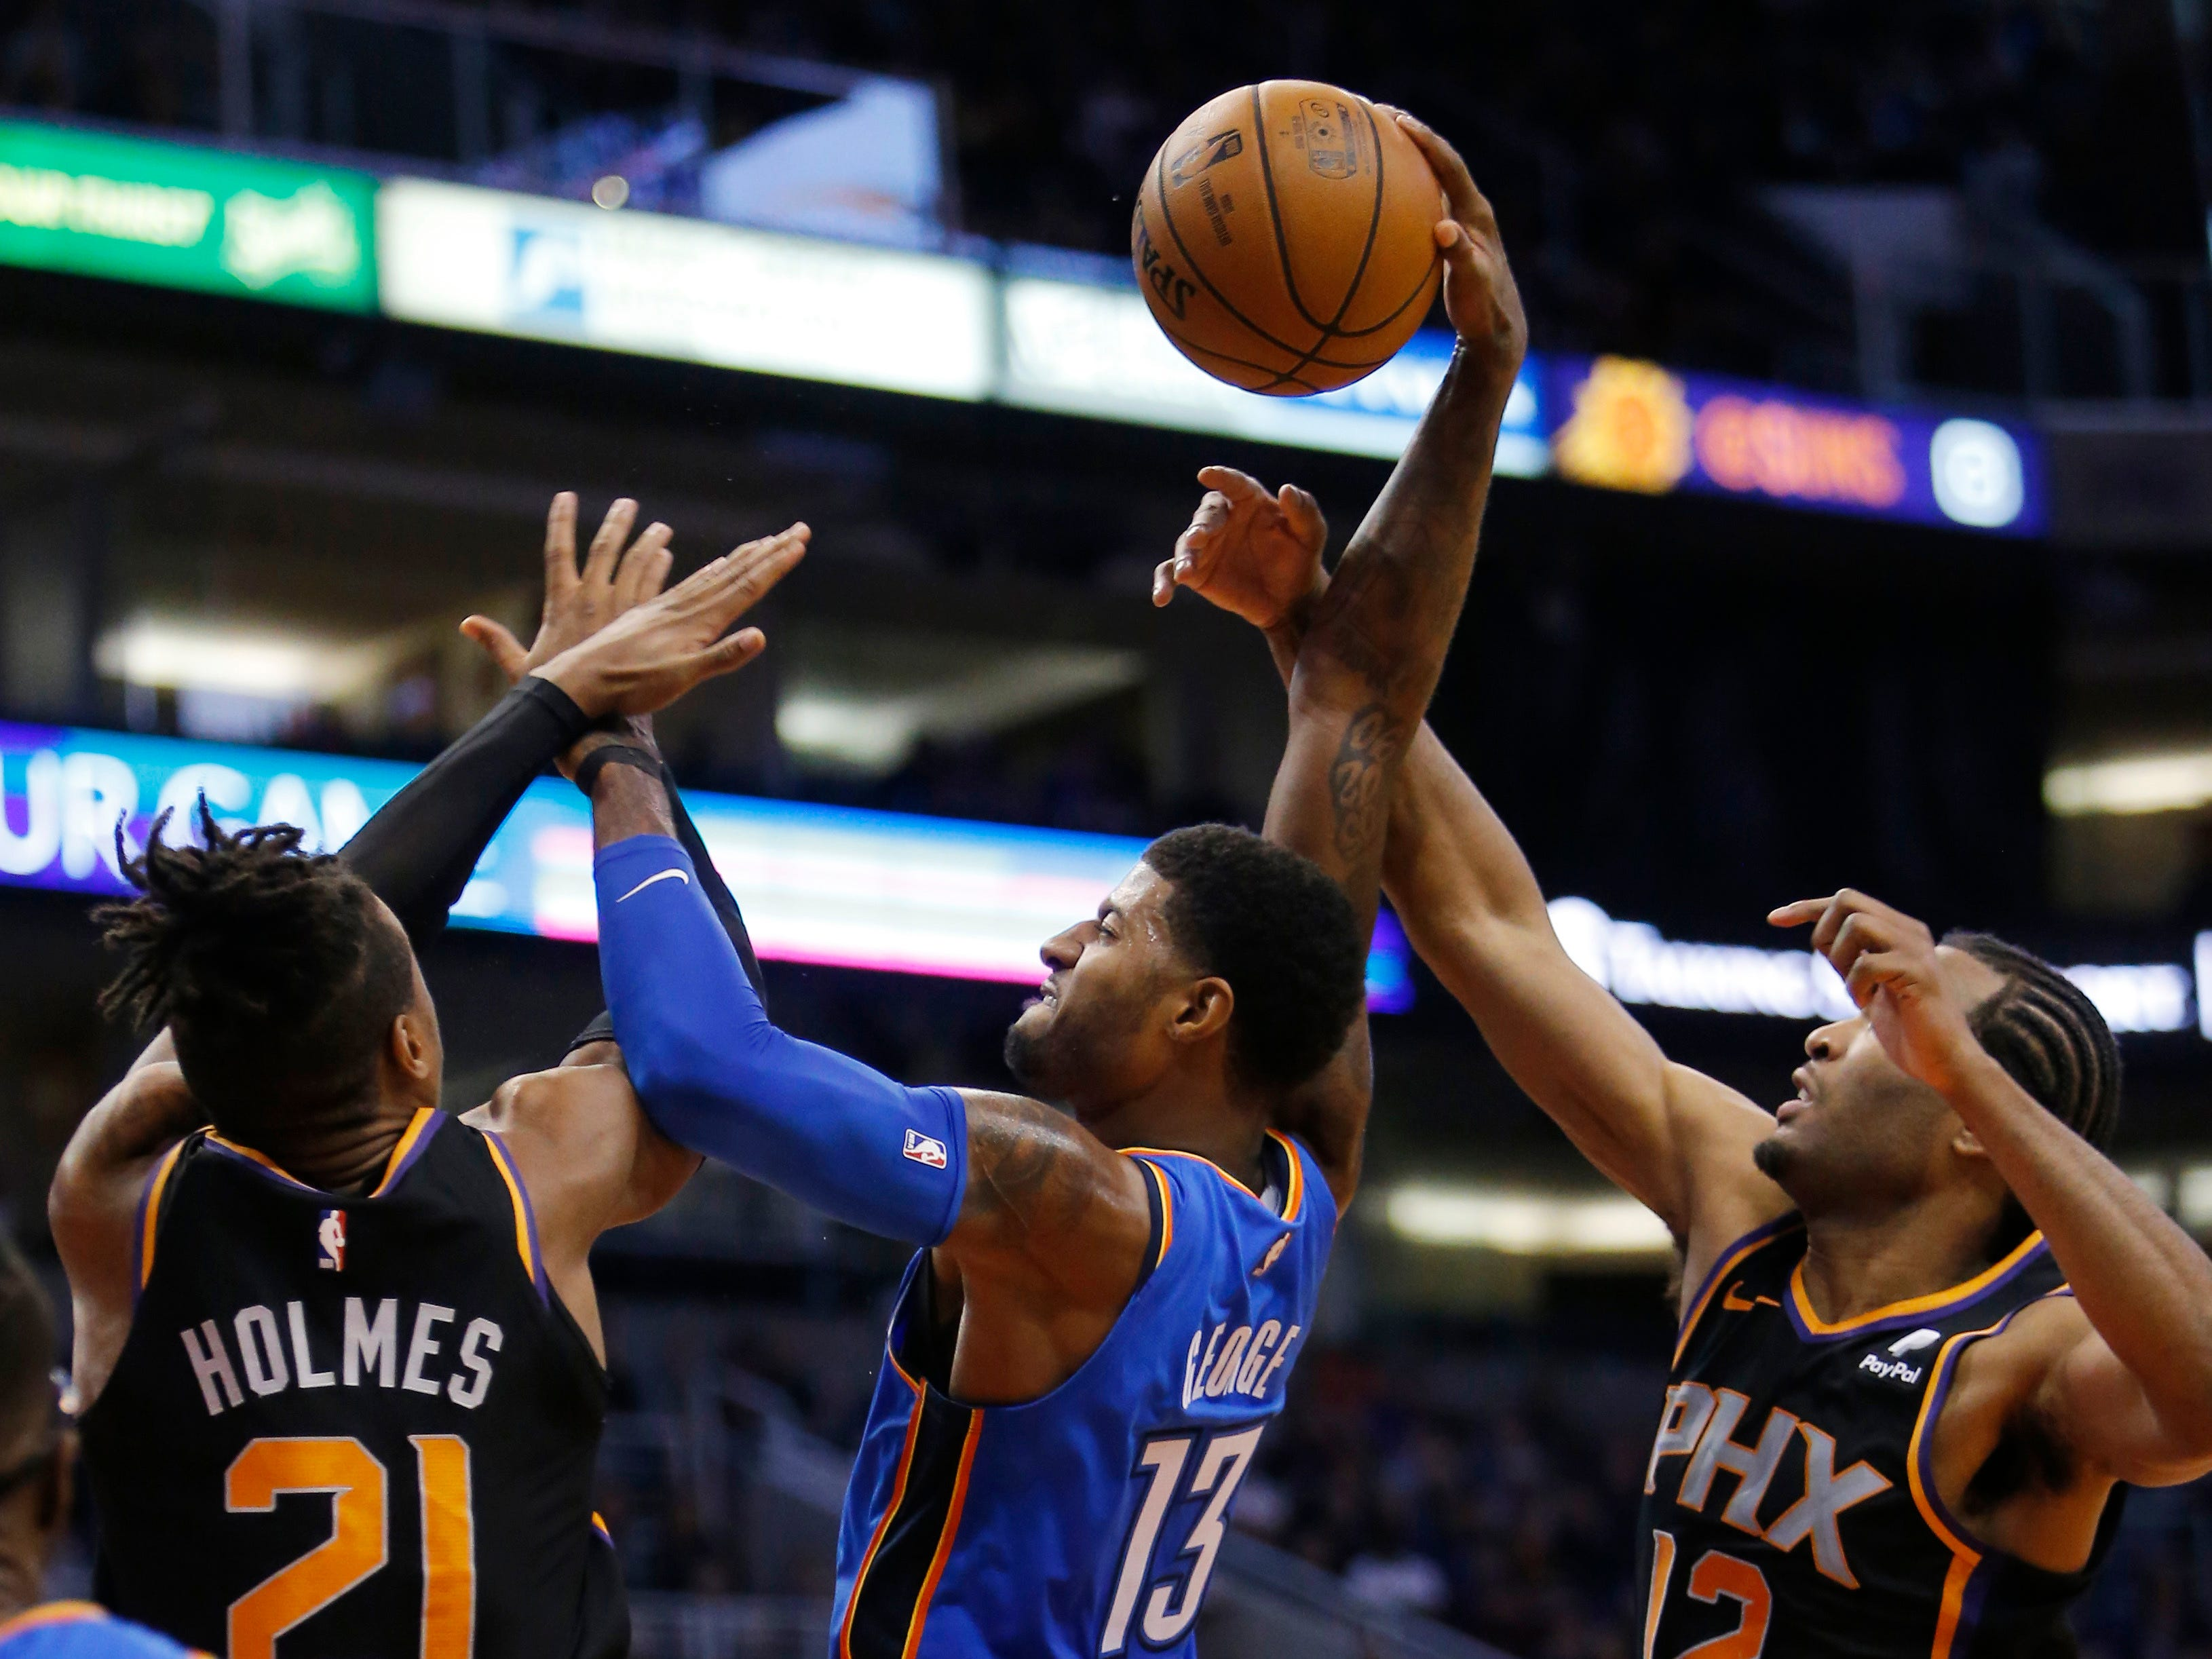 Oklahoma City Thunder forward Paul George (13) drives between Phoenix Suns forward Richaun Holmes and TJ Warren (12) during the second half of an NBA basketball game Saturday, Nov. 17, 2018, in Phoenix. Oklahoma City won 110-100. (AP Photo/Rick Scuteri)